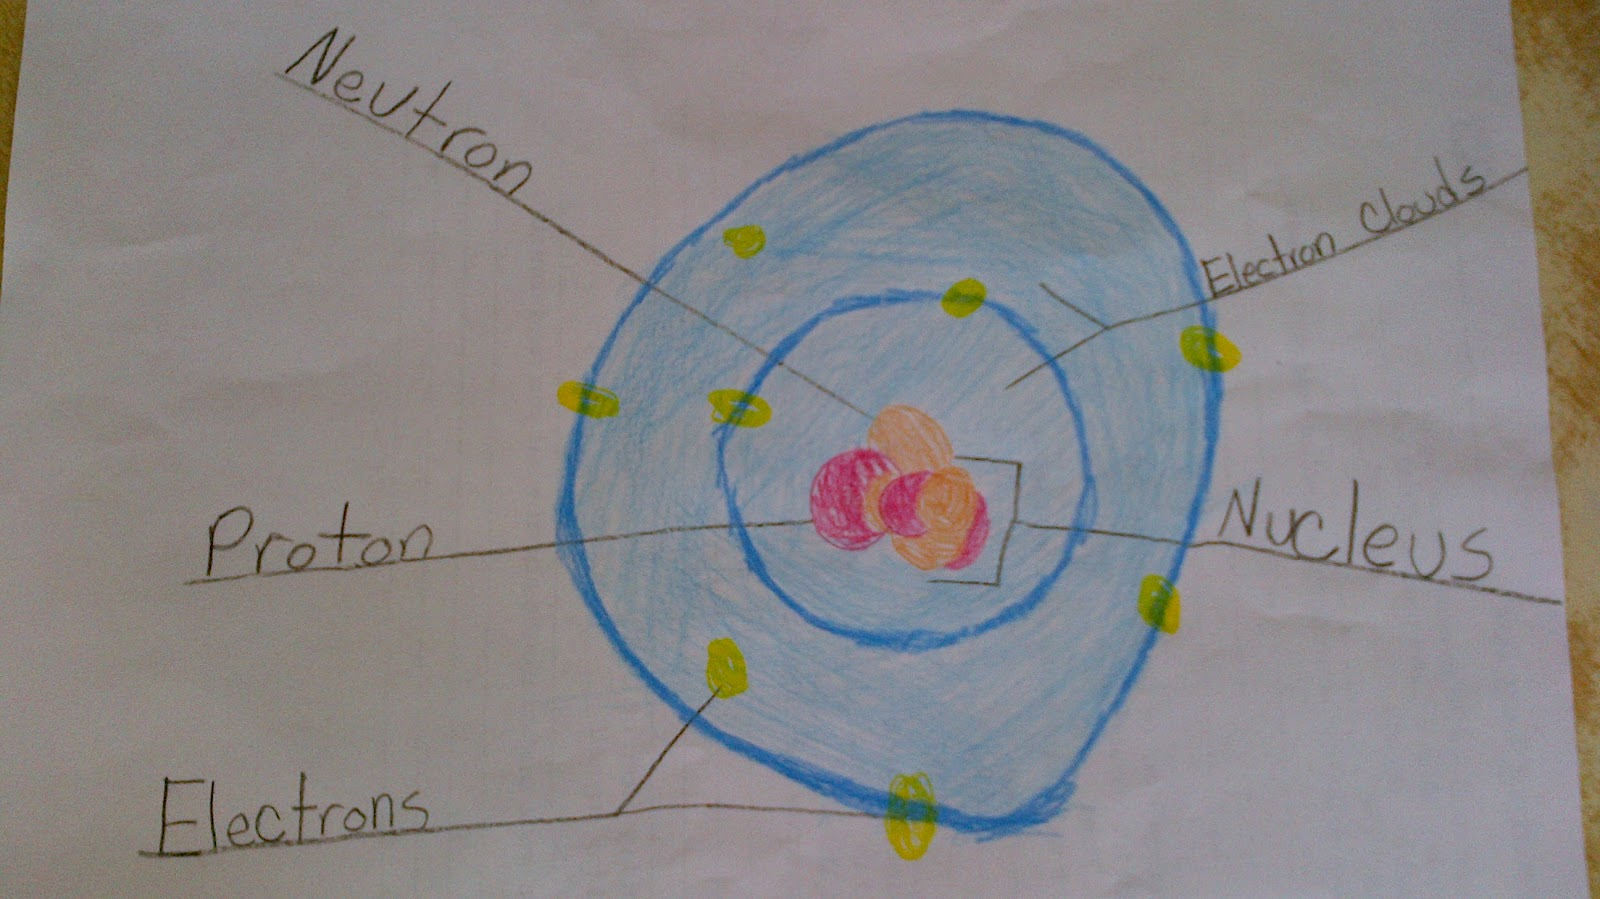 Brainsmart 5th Grade Atoms For Kids What Is An Atom Made Up Of Atom Make Up What Is An